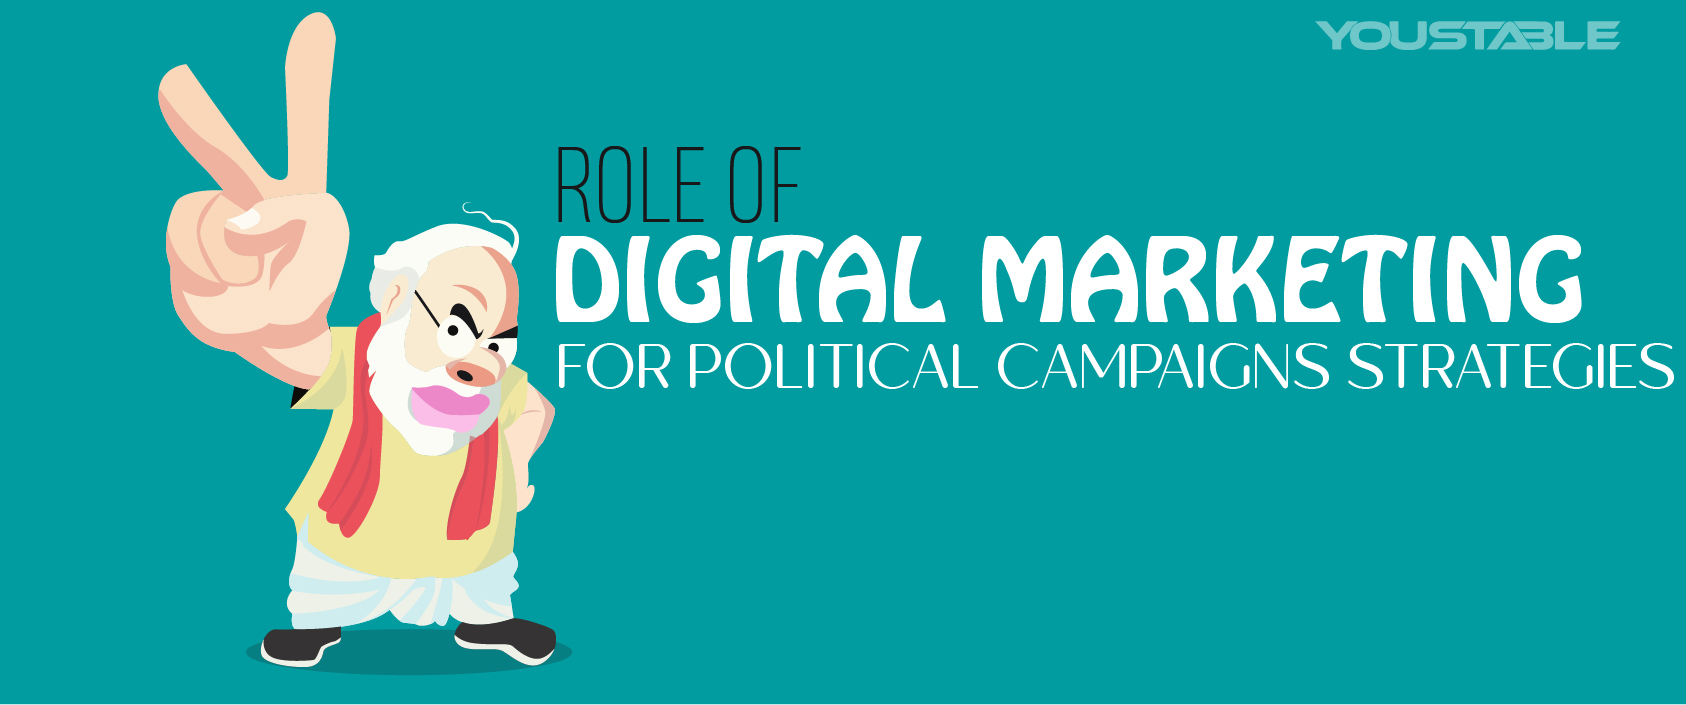 Role of Digital Marketing for Political Campaigns Strategies